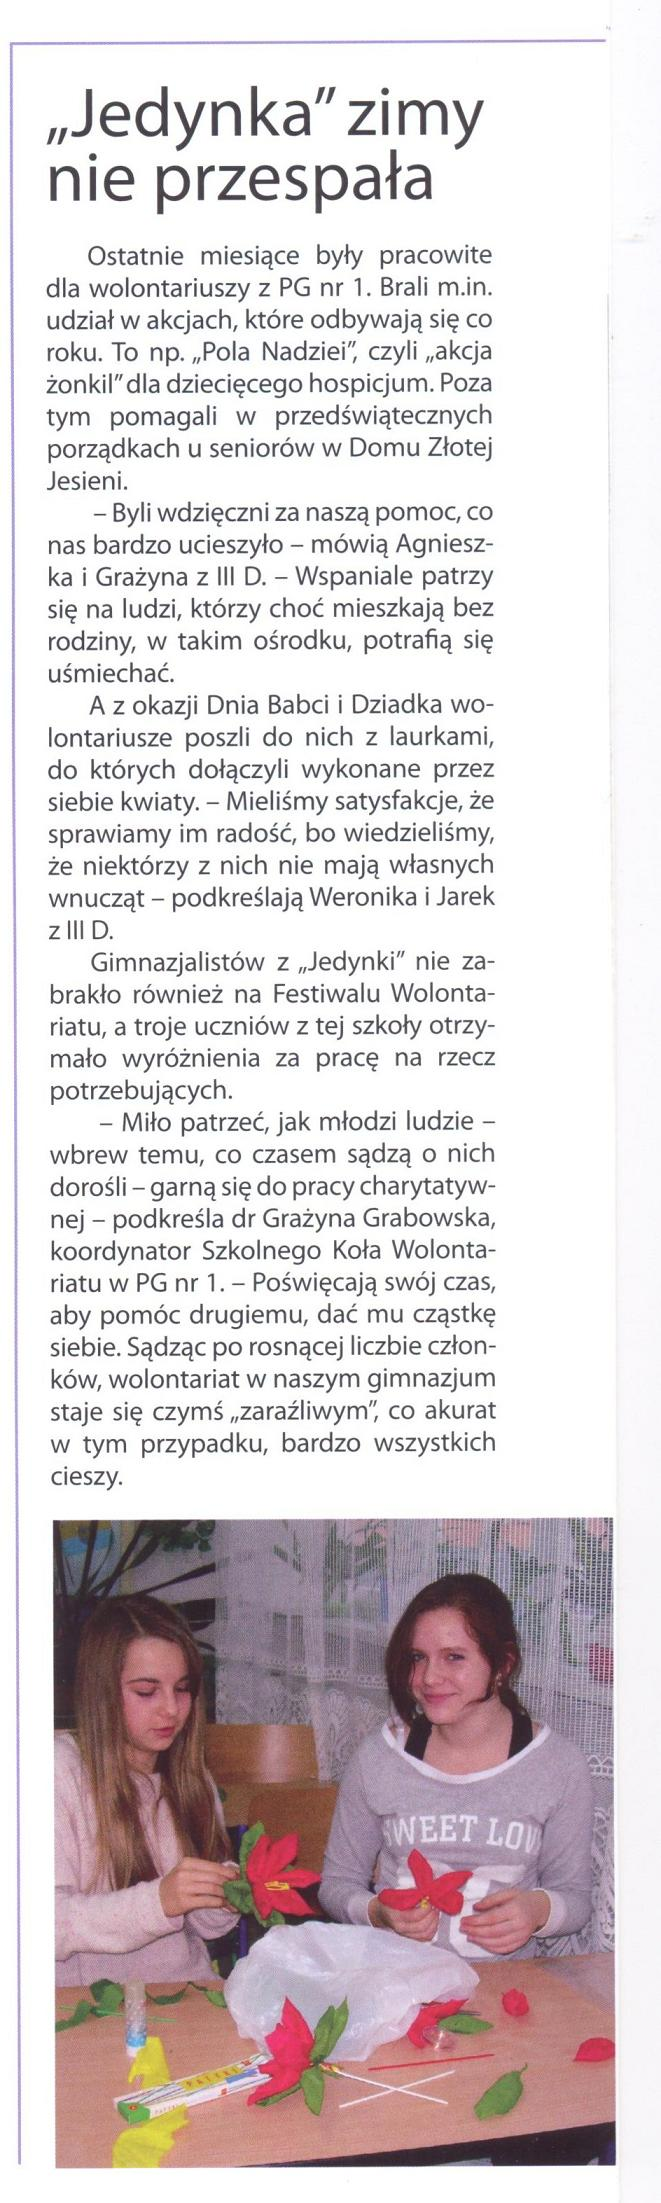 You are browsing images from the article: Mówią i piszą o nas